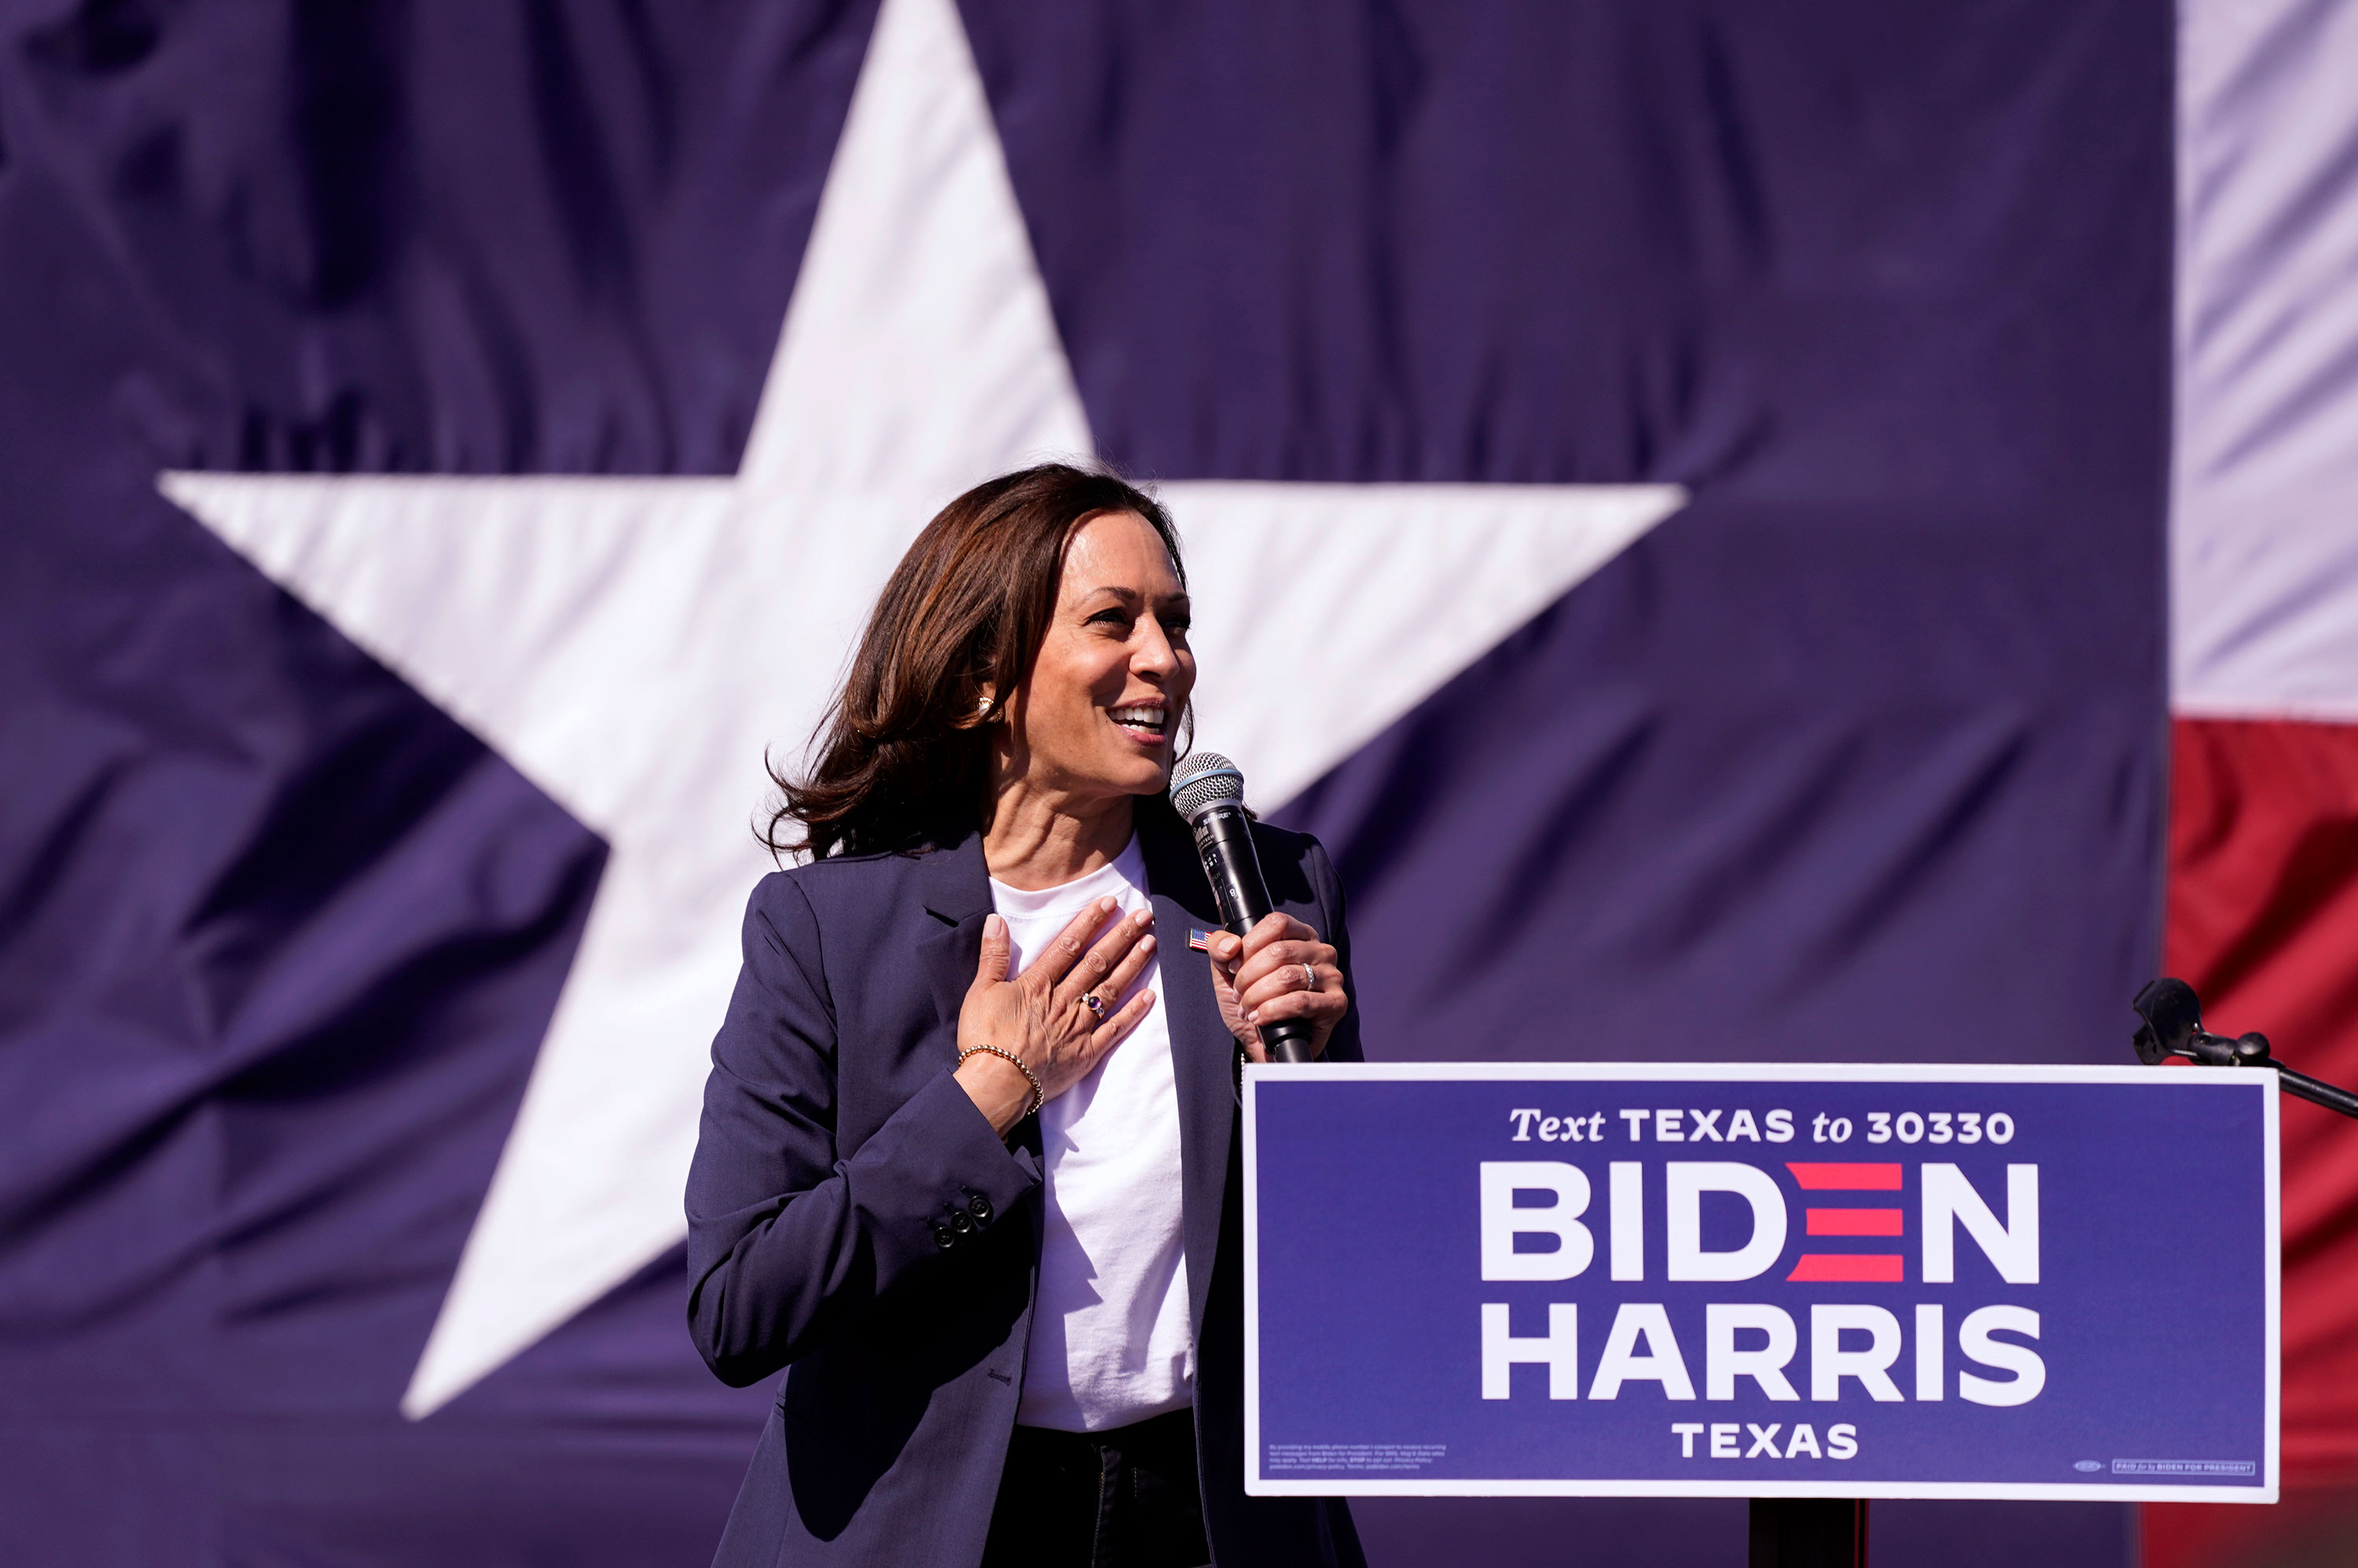 Kamala Harris speaks at a campaign event on Friday, October 30 in Fort Worth, Texas.